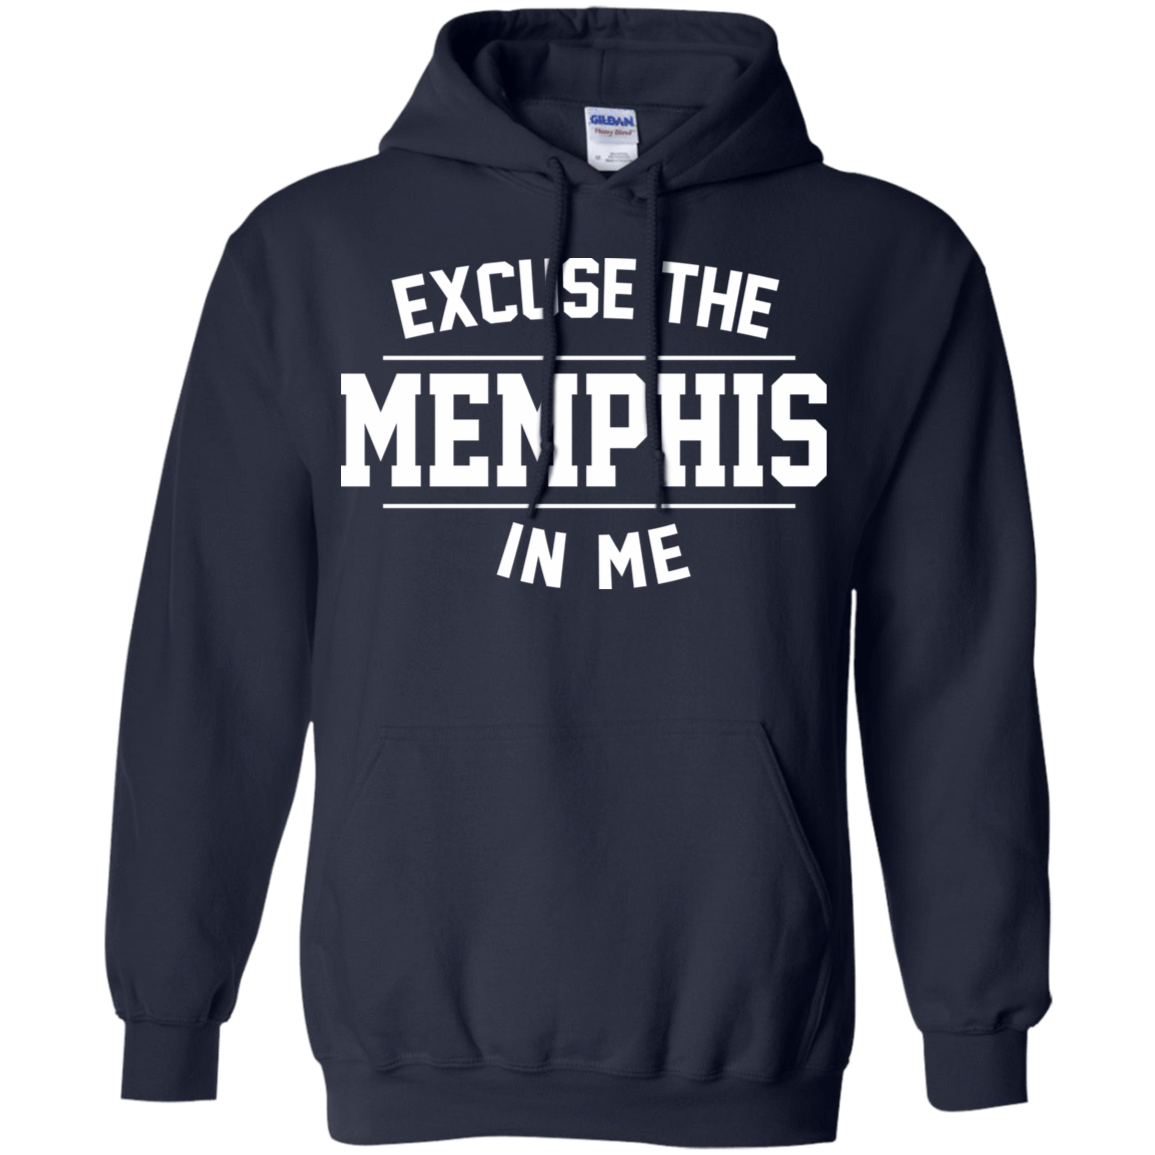 Excuse The Memphis In Me 541-4742-73547959-23135 - Tee Ript